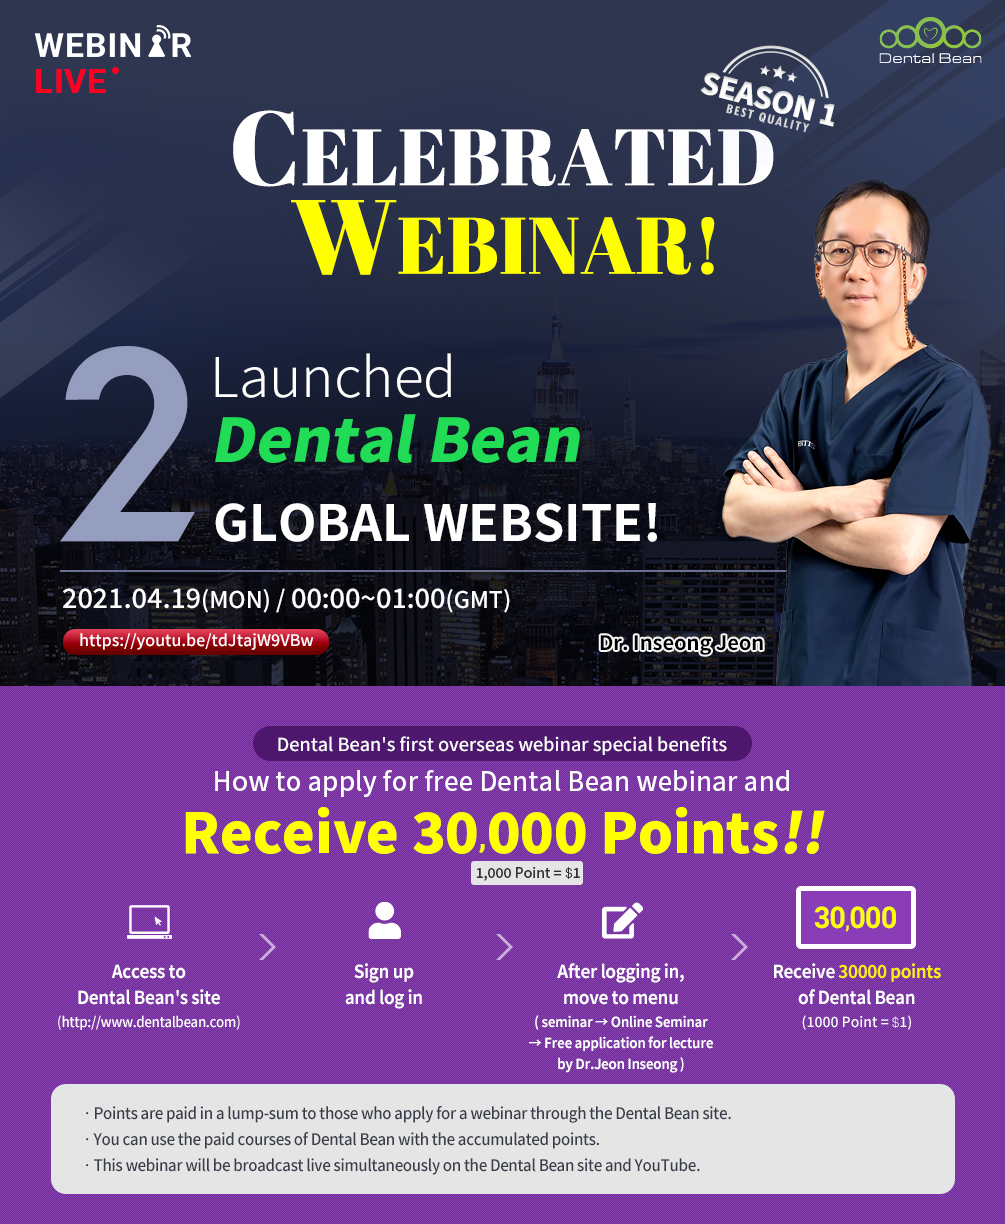 New Launched Dental Bean Global Website! And Celebrated Webinar!